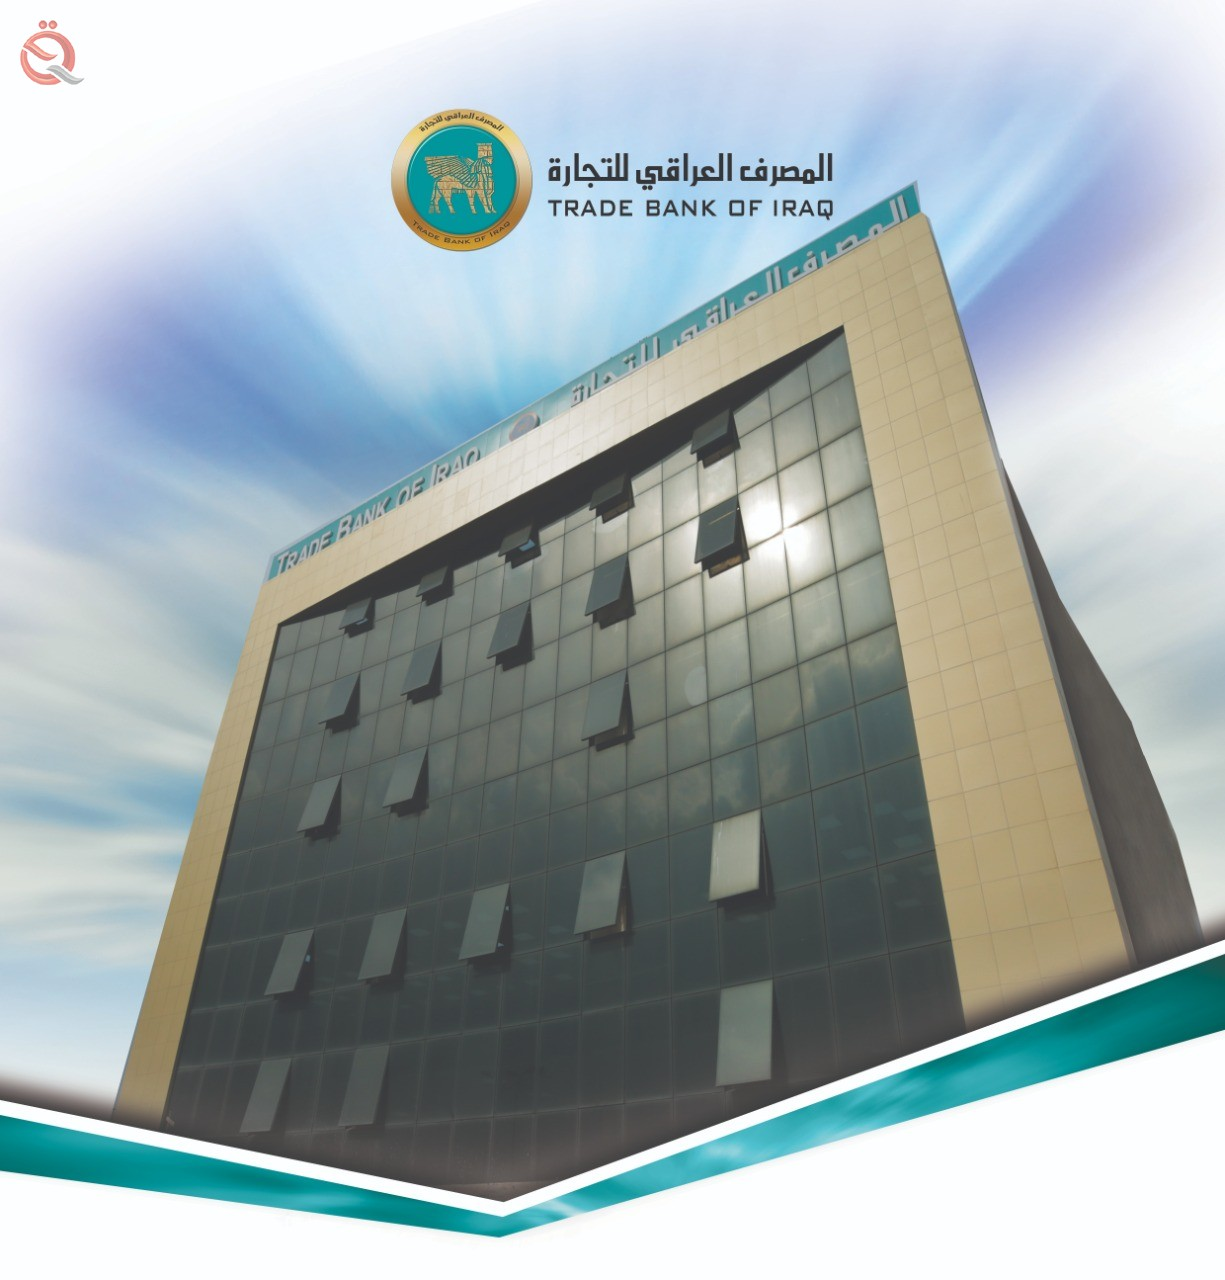 The Trade Bank of Iraq achieves 836 billion dinars in net profits for the year 2019 18526